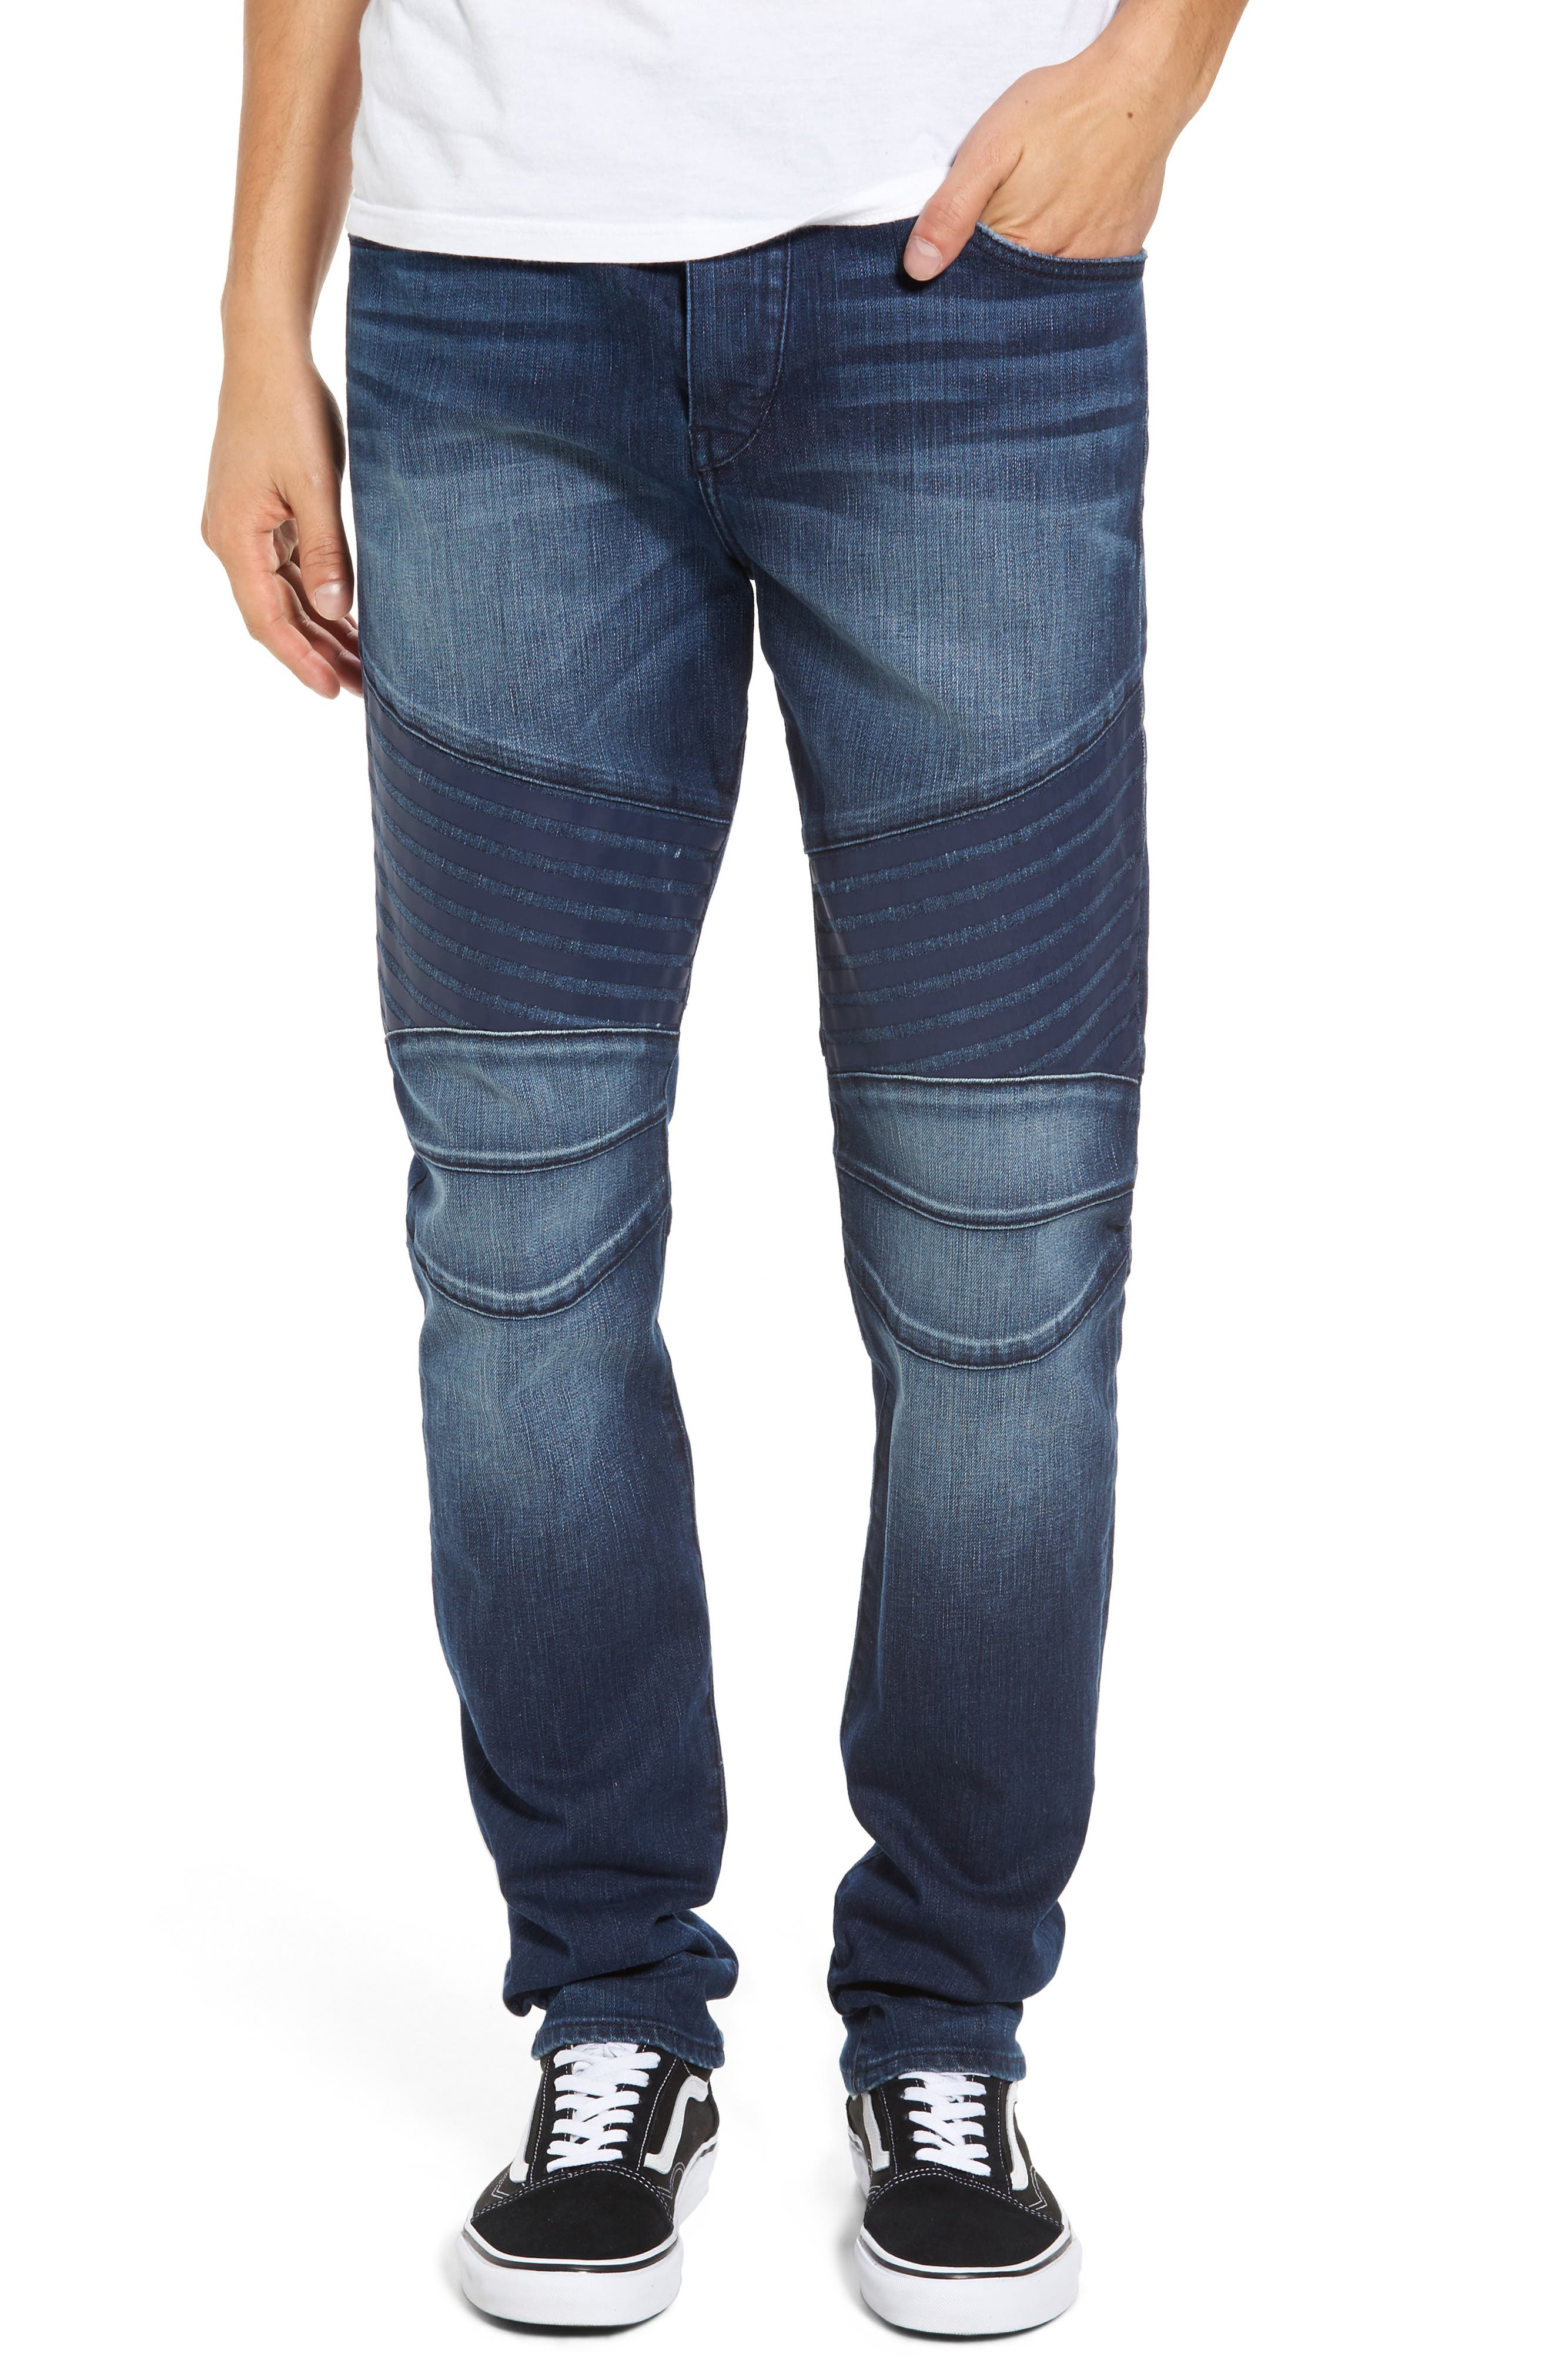 Rocco Biker Skinny Fit Jeans,                         Main,                         color, 401